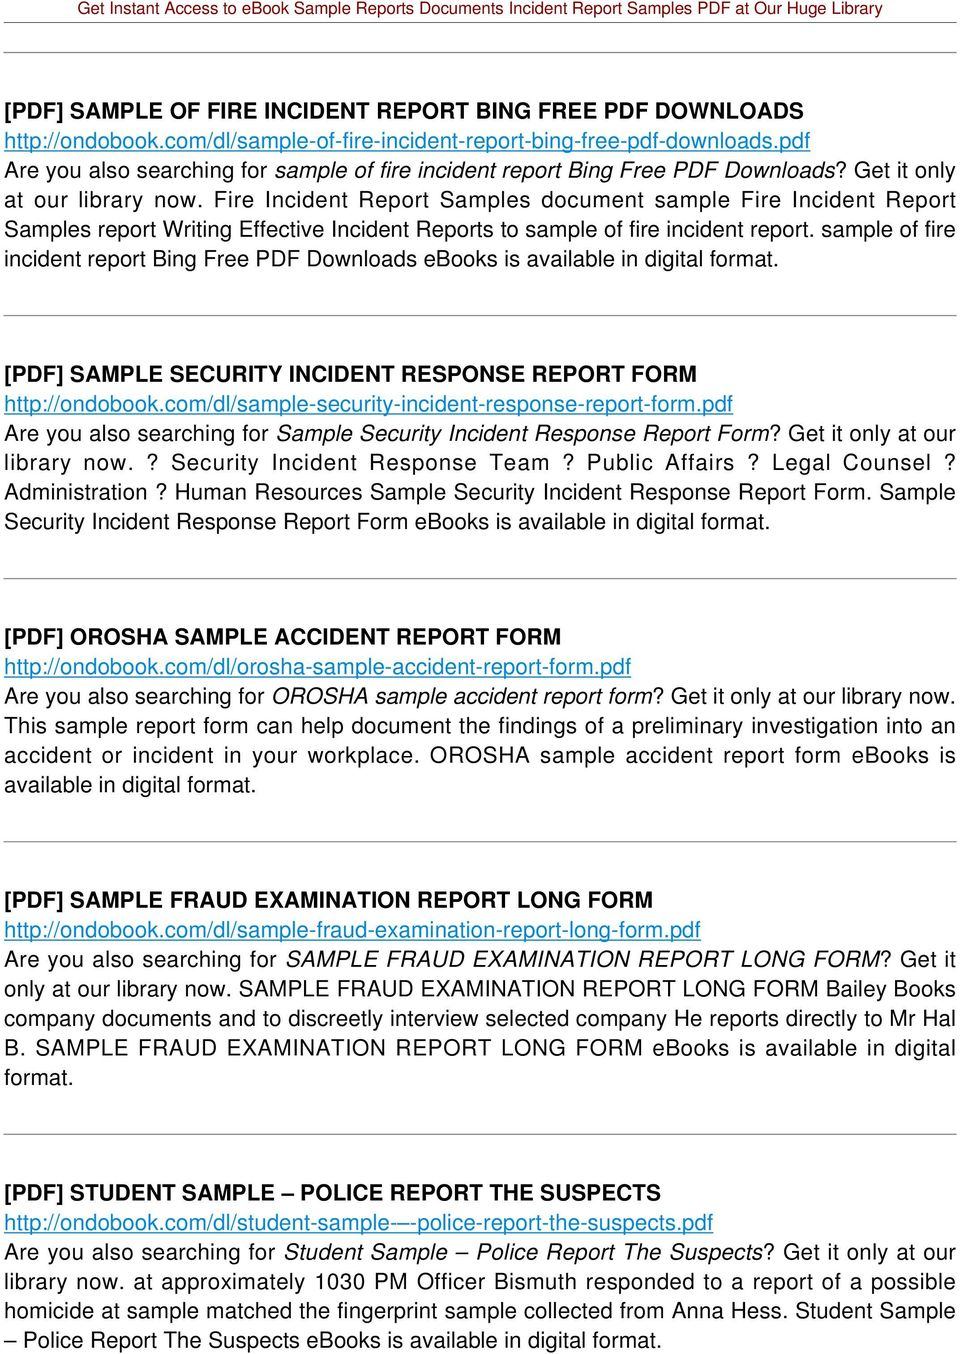 Fire Incident Report Samples document sample Fire Incident Report Samples report Writing Effective Incident Reports to sample of fire incident report.